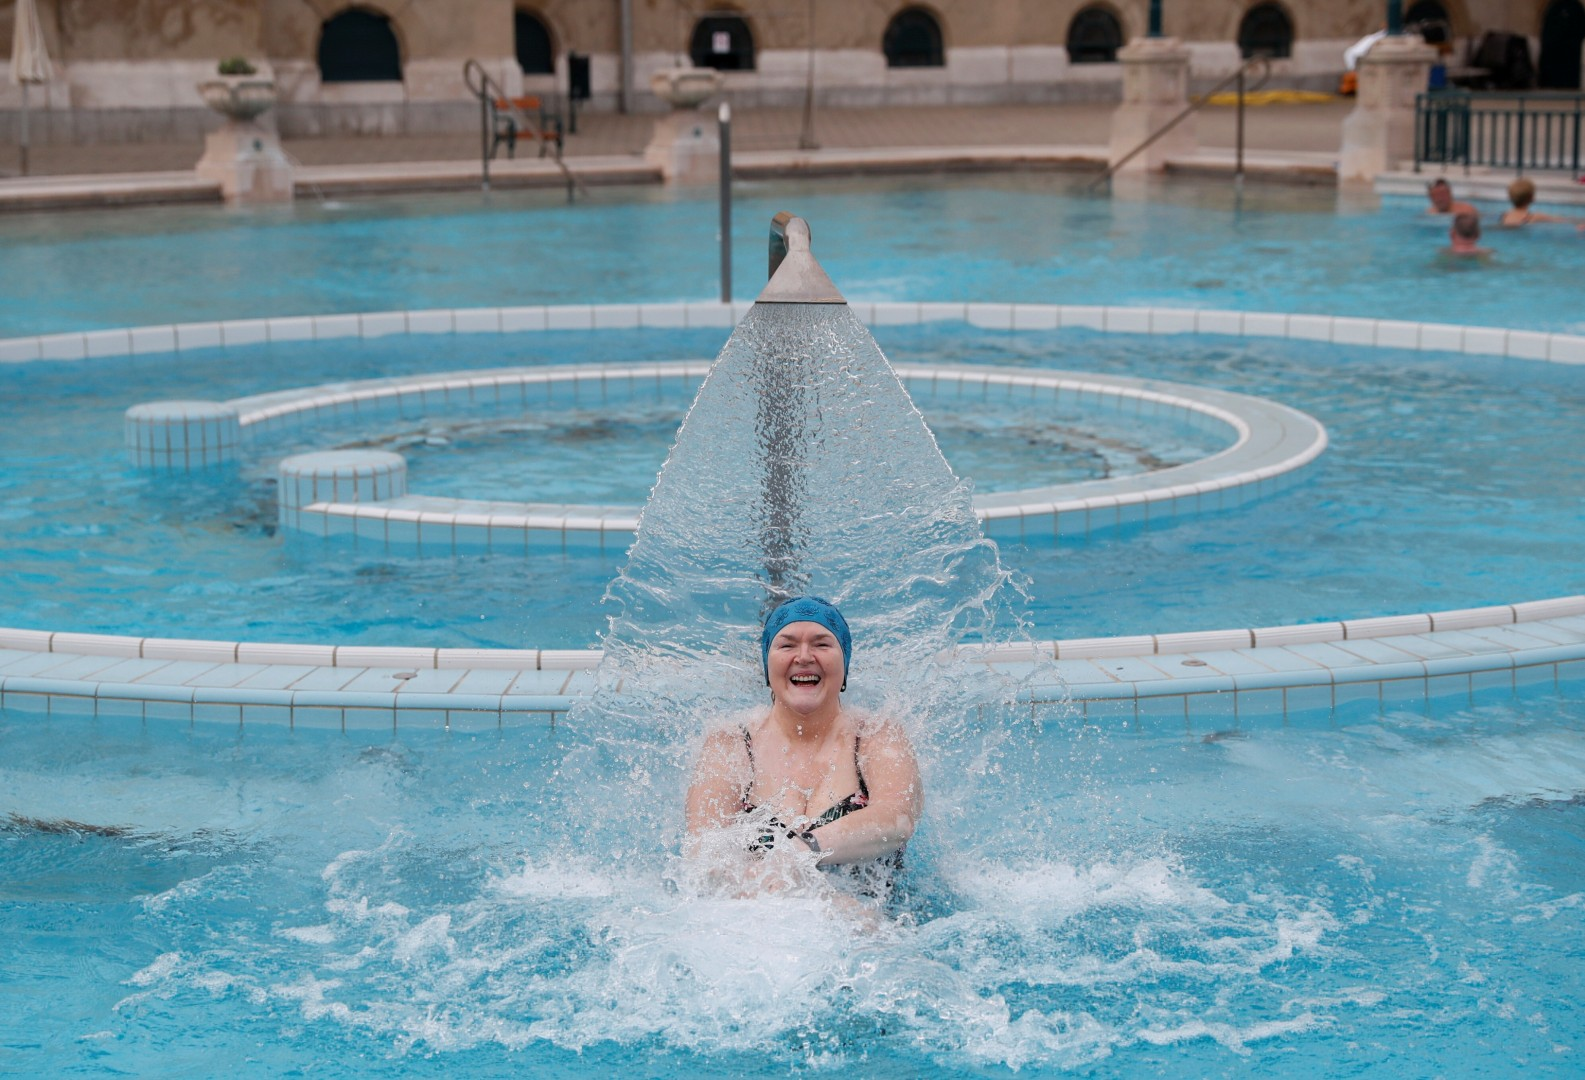 Hungary reopens spas, gyms, pools for people holding coronavirus immunity  cards | South China Morning Post